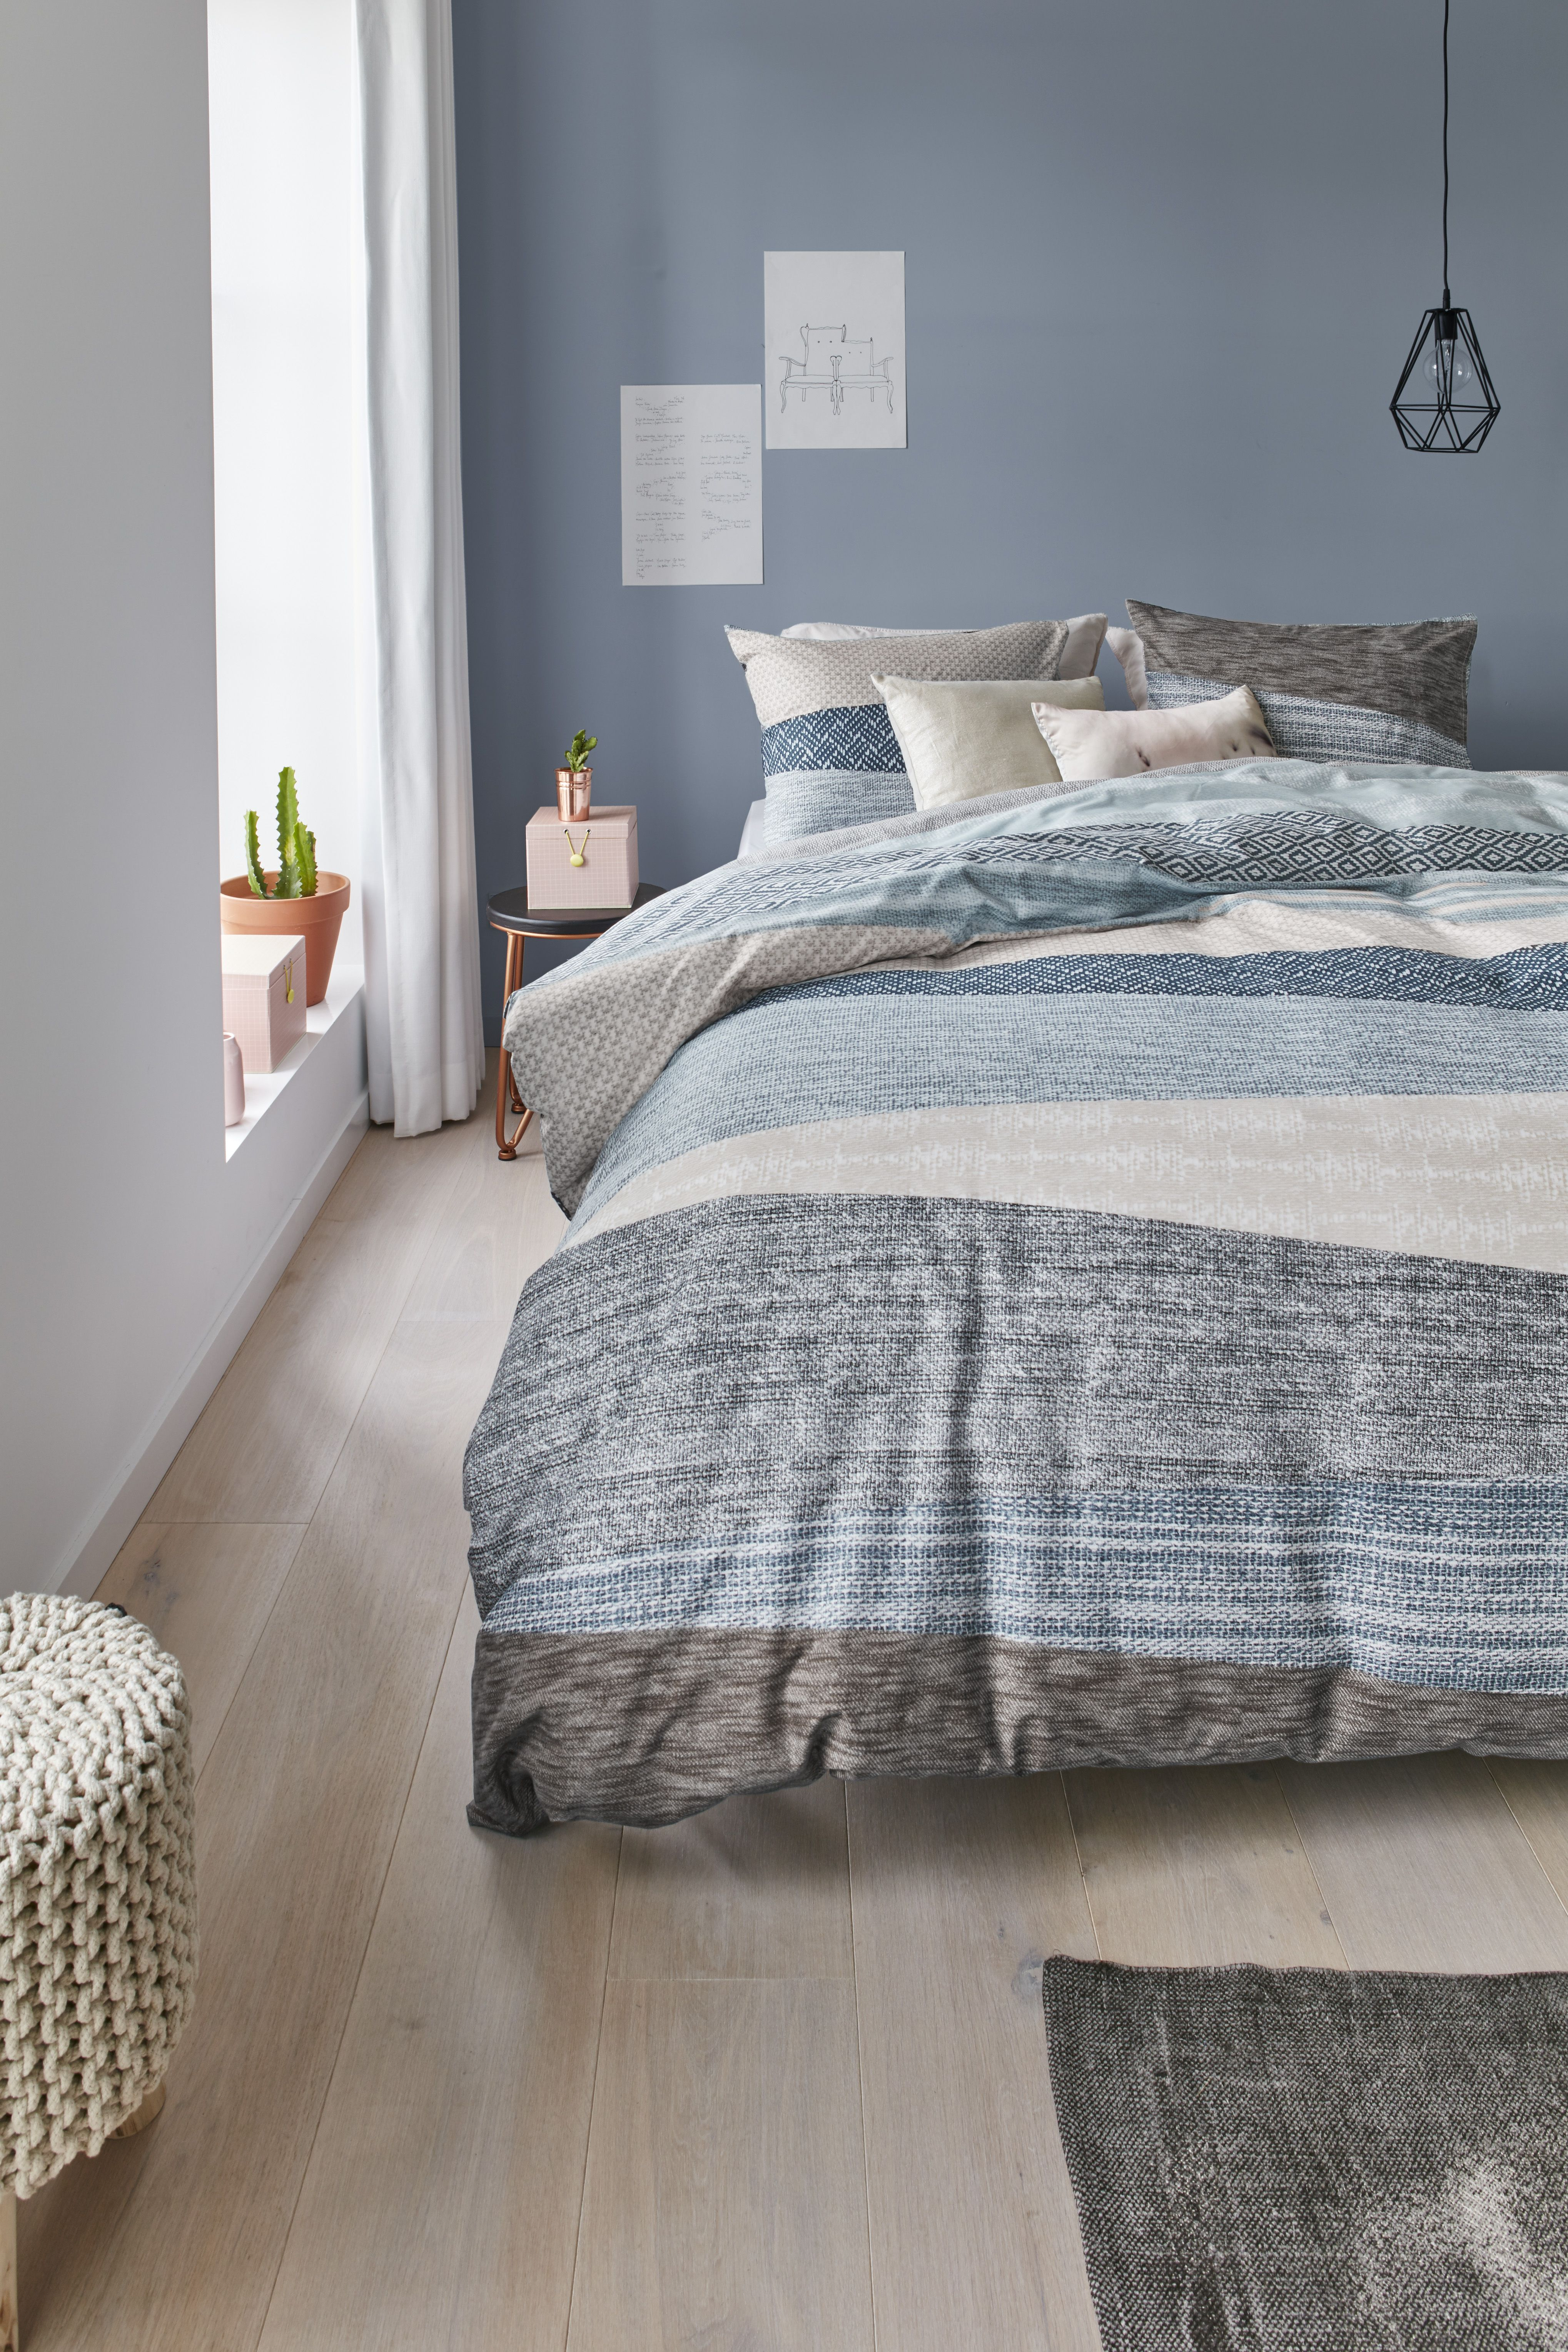 Bedroom Denim Drift style